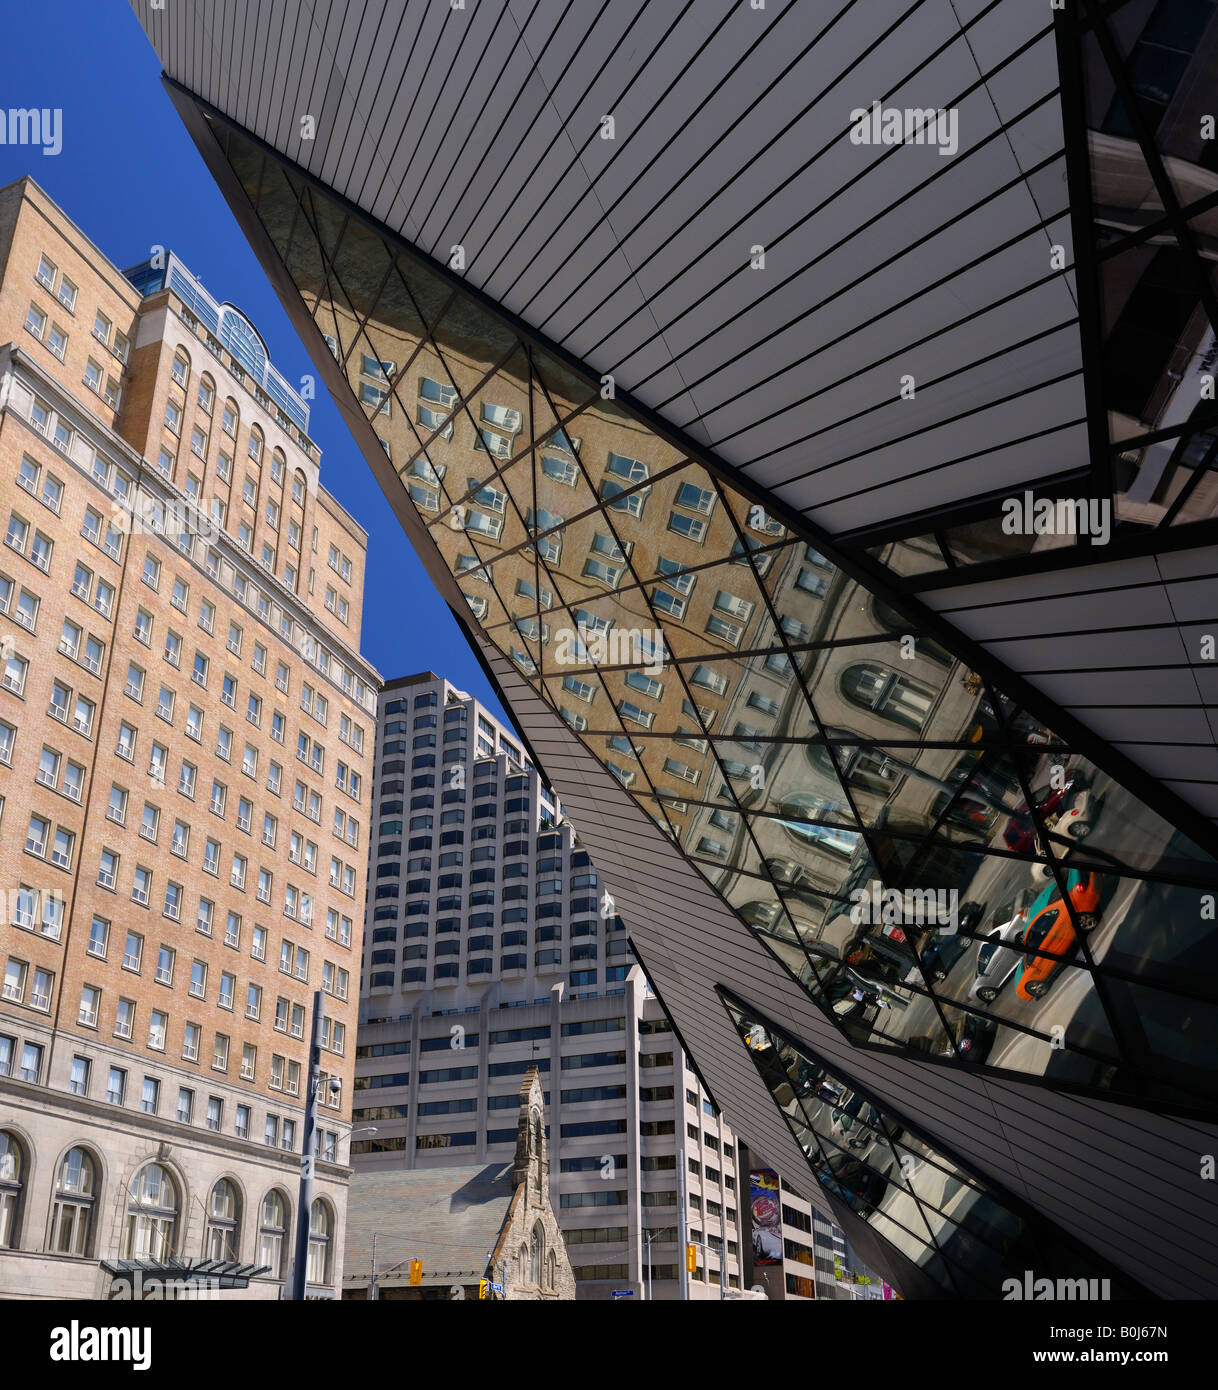 Reflections of Toronto buildings in the modern glass Crystal addition to the Royal Ontario Museum - Stock Image